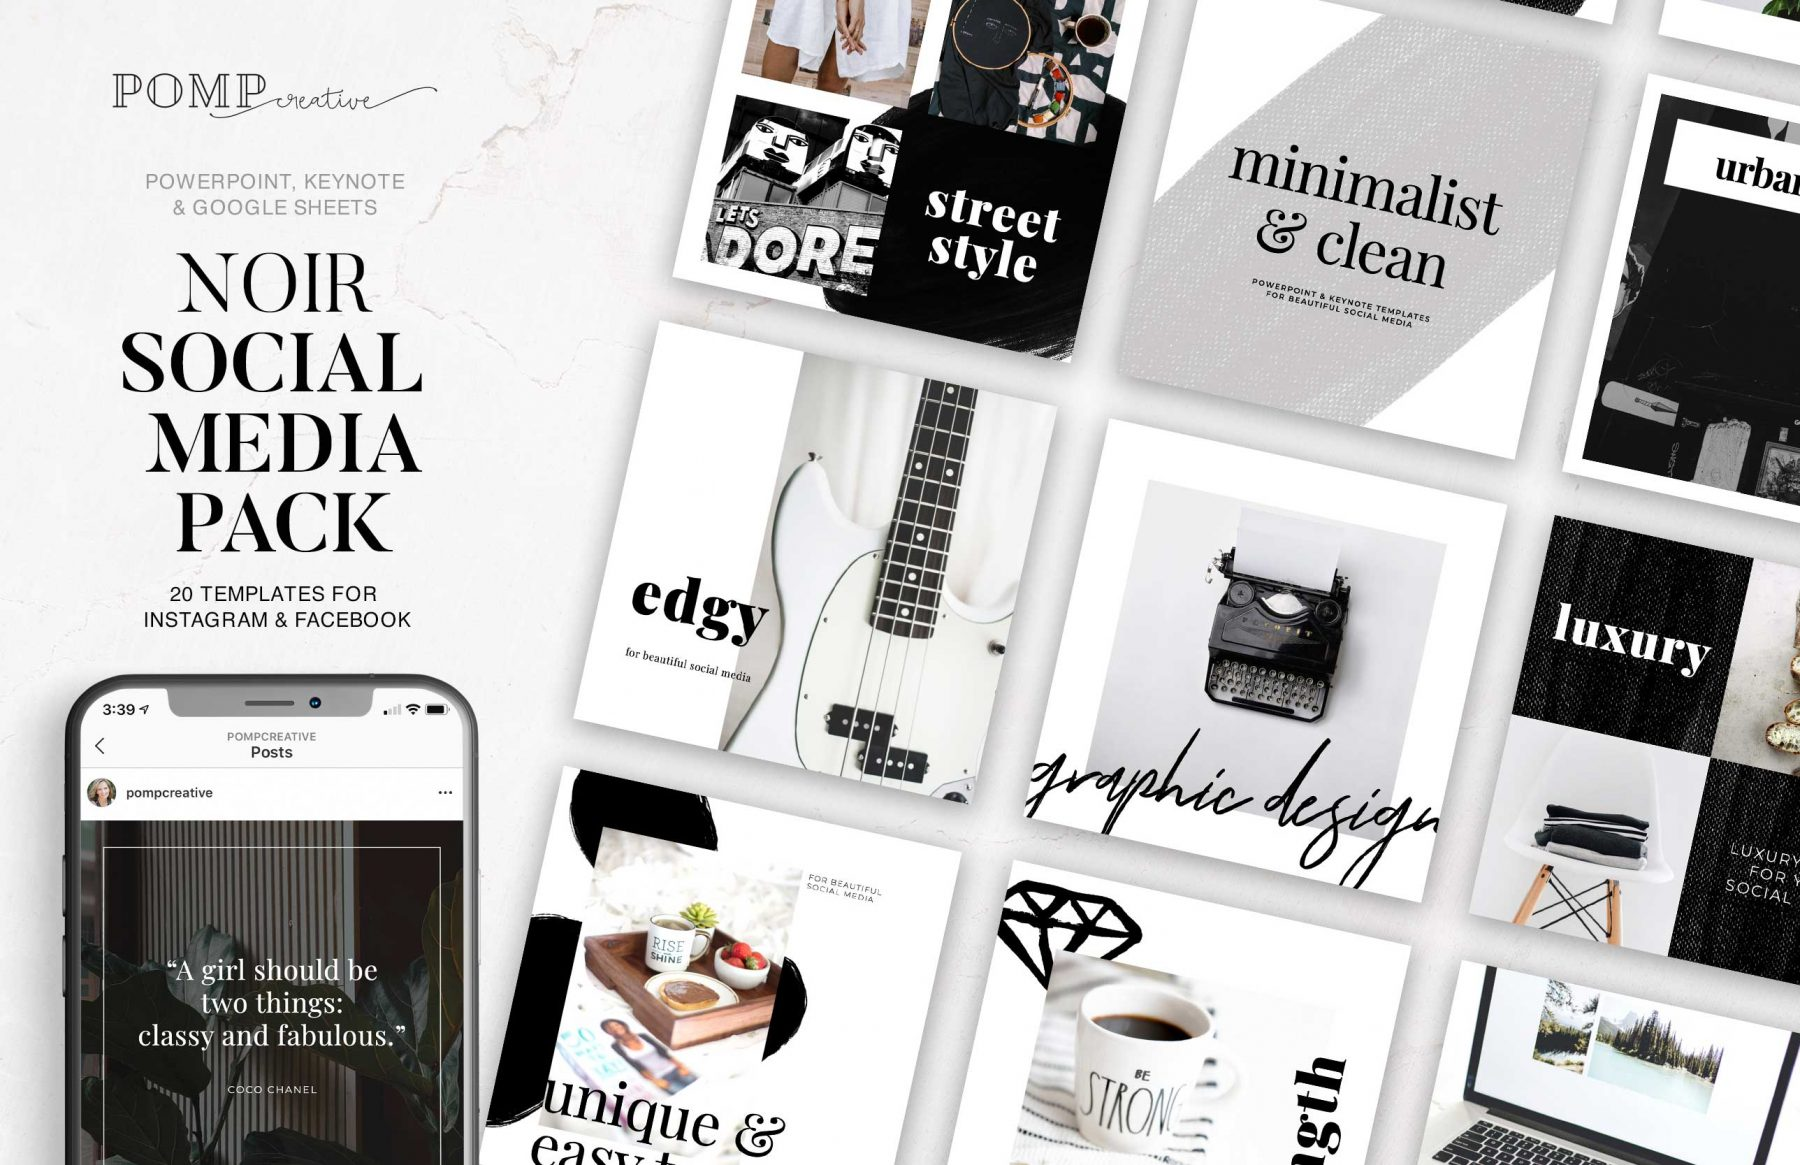 Social Media Templates; Instagram; Ladypreneur; Entrepreneur; Powerpoint Templates; Instagram Templates; Pinterest; Keynote Templates